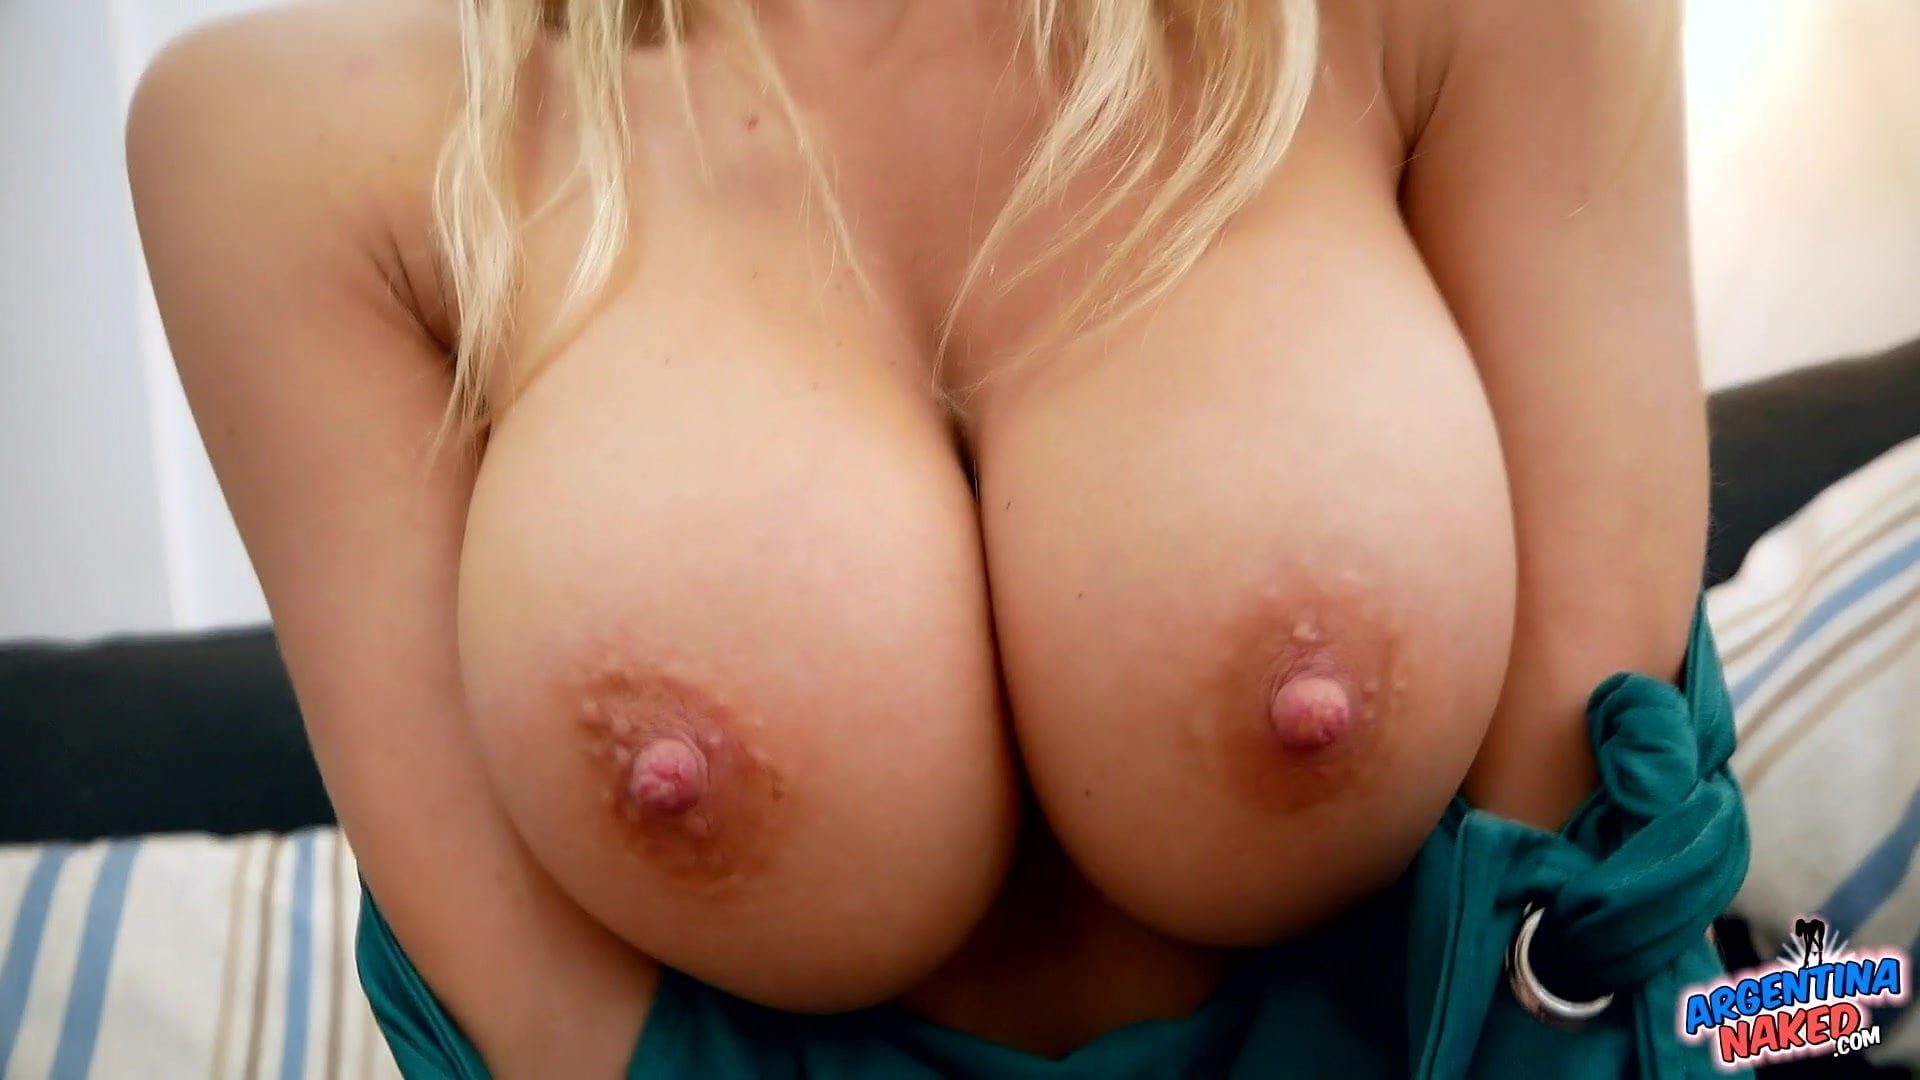 Perfect Blonde Doll With Perfect Tits Ass and Flawless Pussy